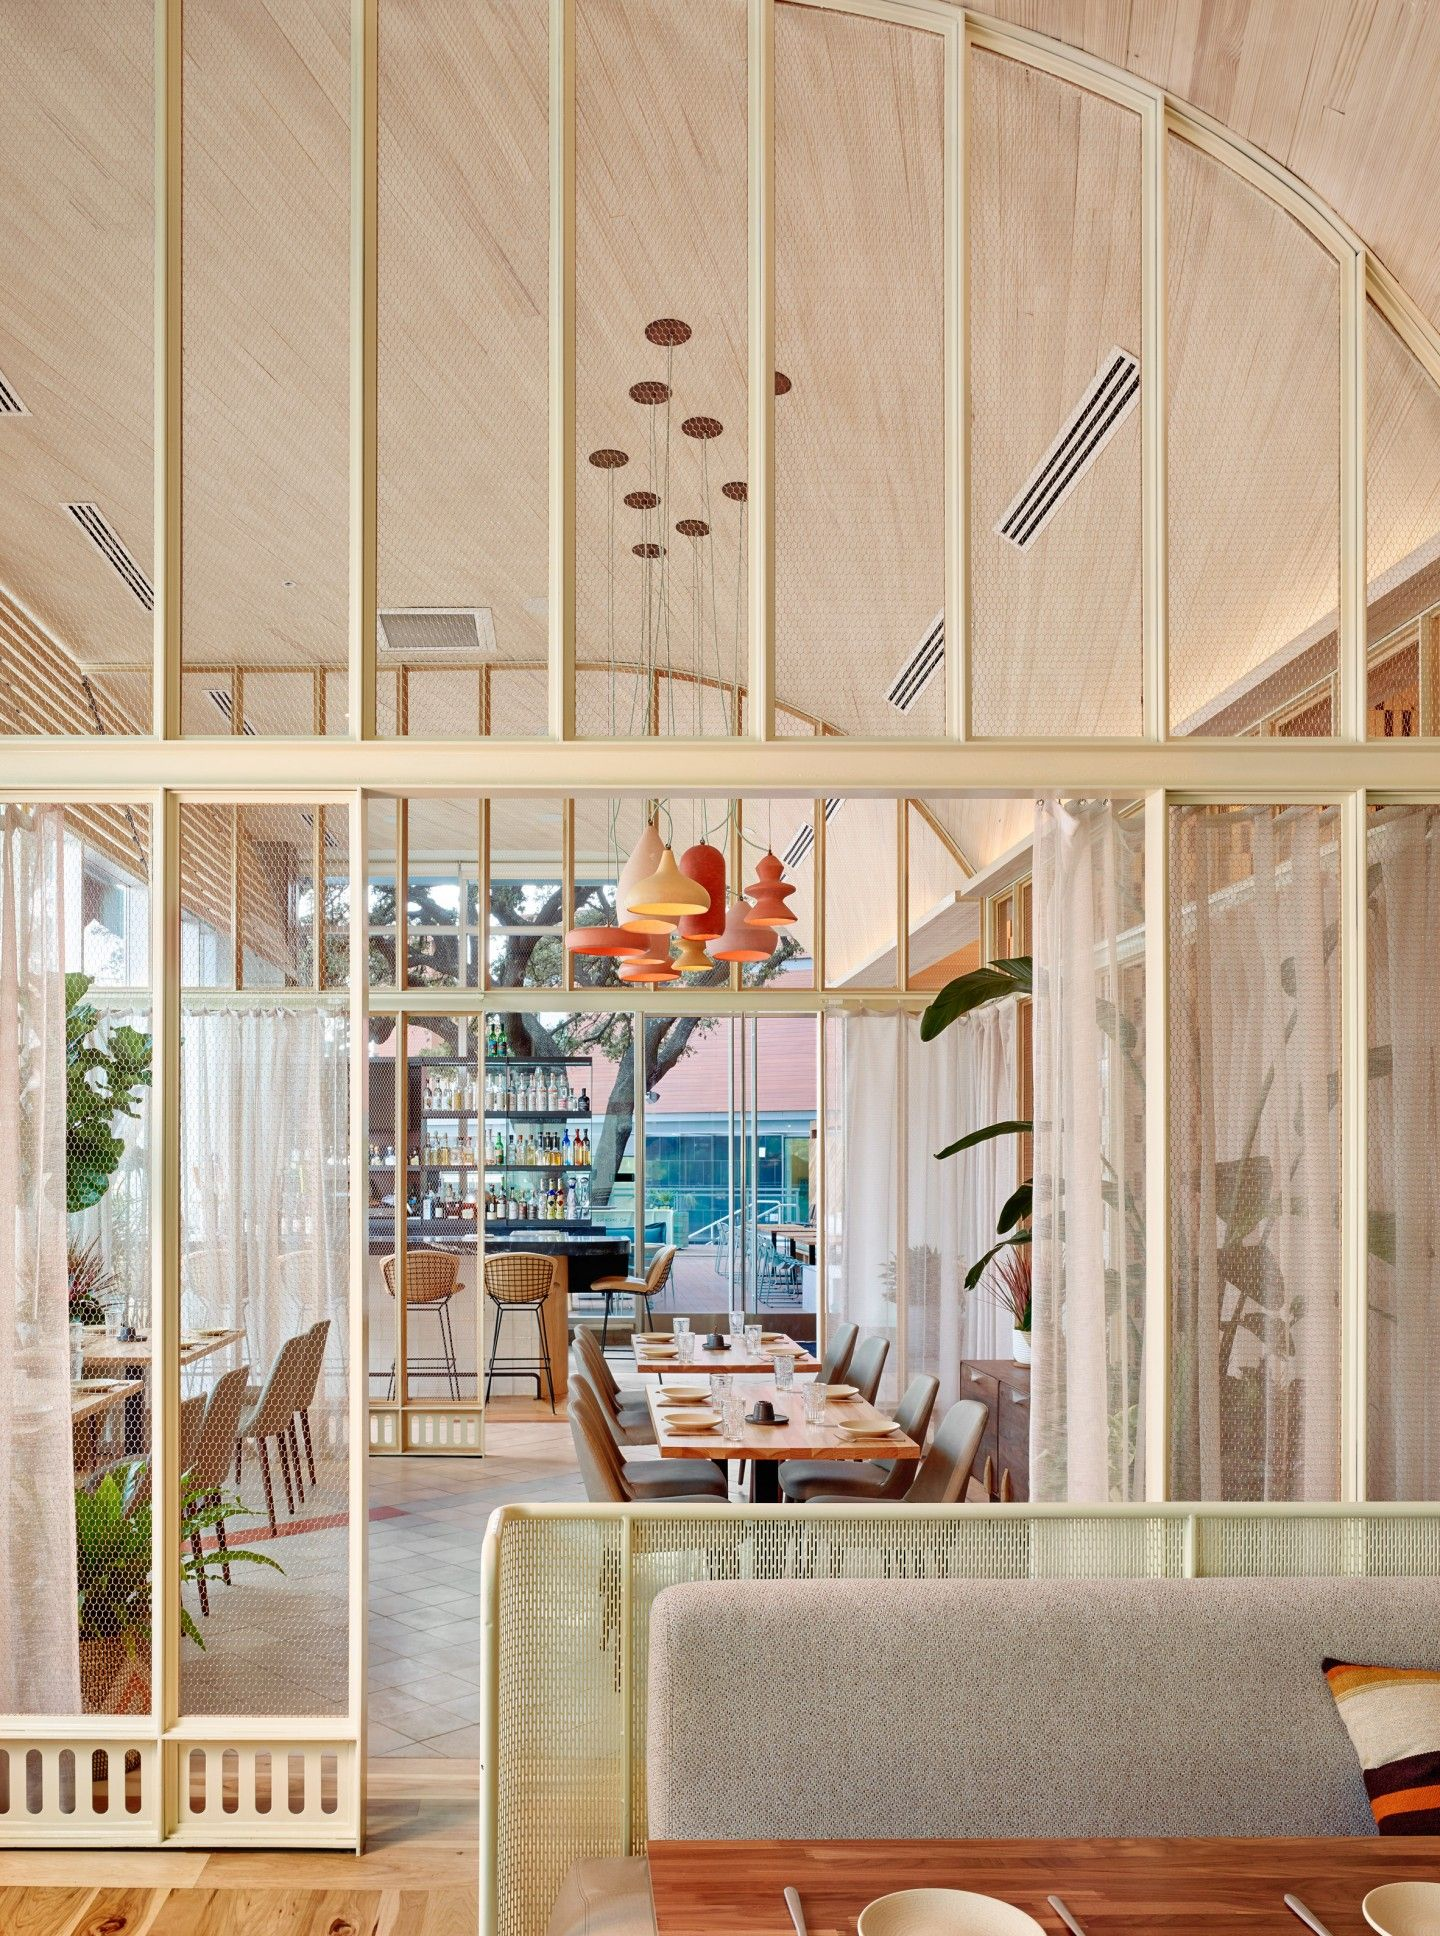 Hospitality Design Trends To Watch For In 2019 2020 Restaurant